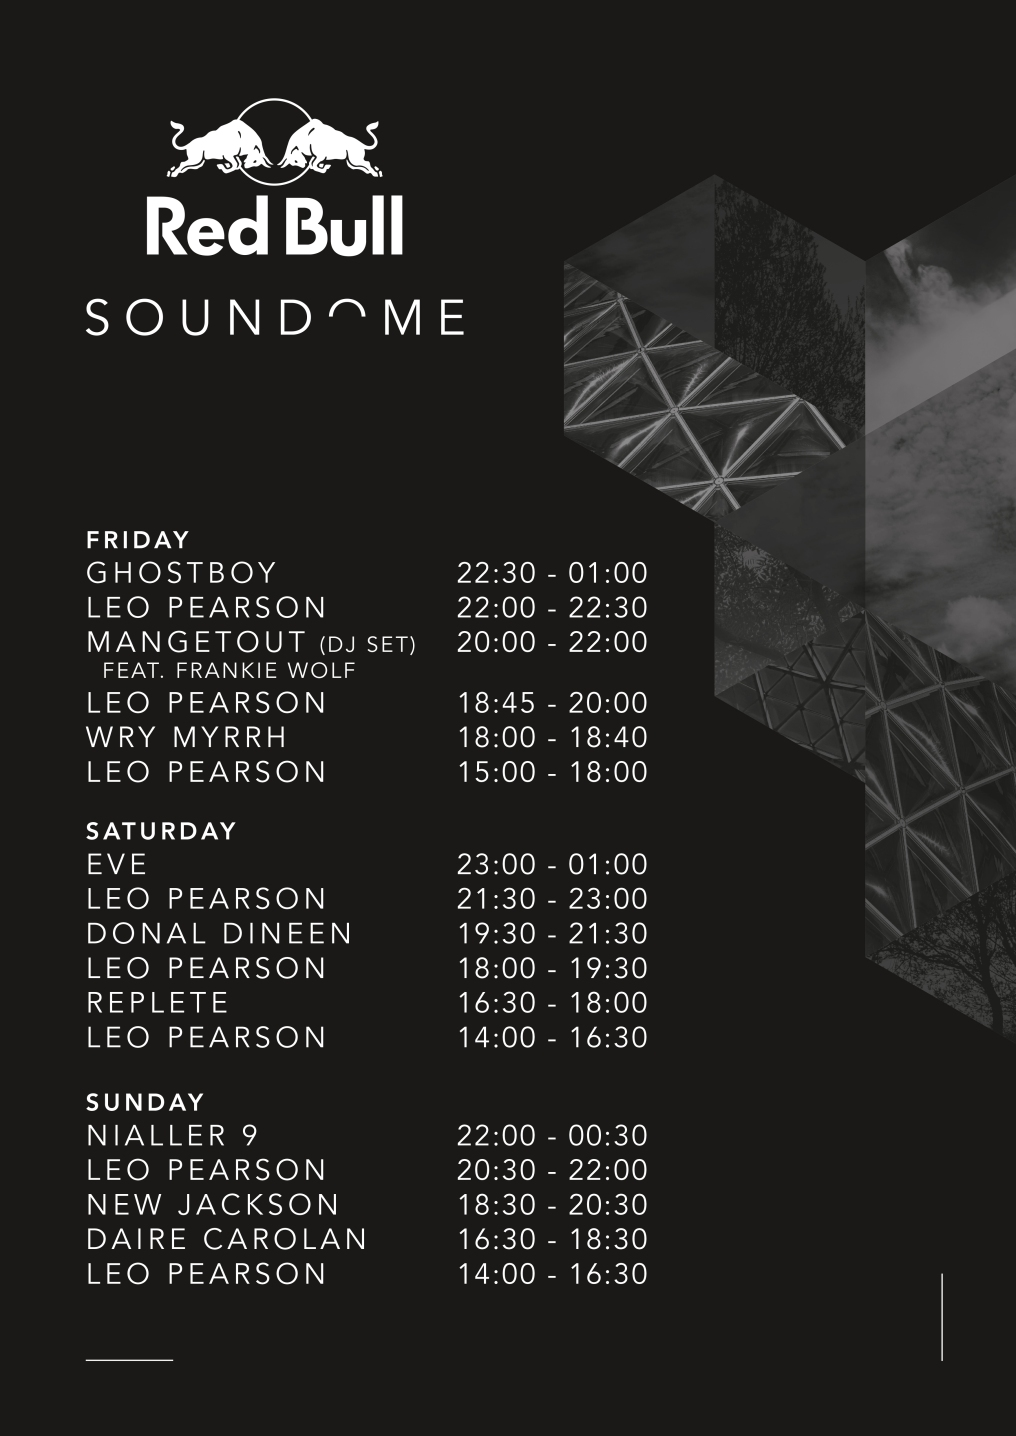 Red Bull Soundome STAGE TIMES